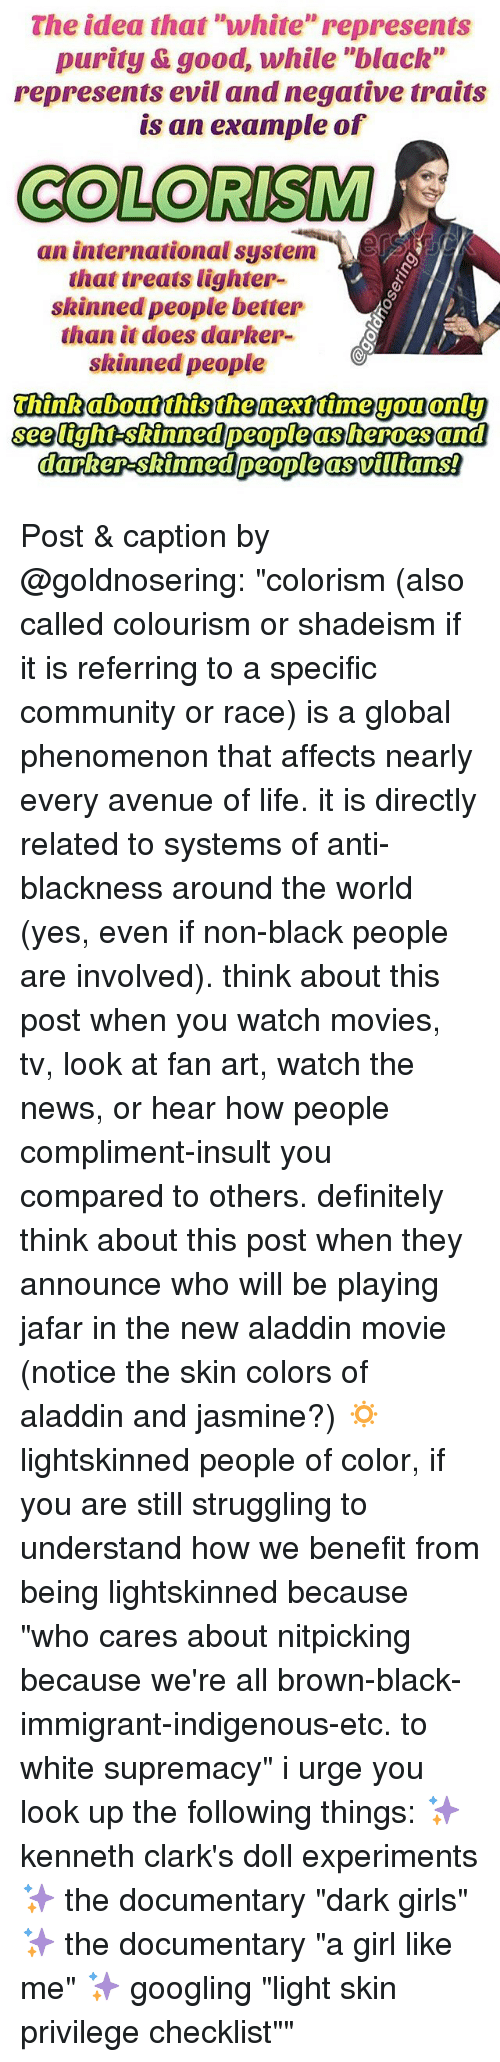 """jafar: The idea that """"white"""" represents  purity &good, while """"black""""  represents evil and negative traits  is an example of  COLORISM  an international system-)、ESS  that treats lighter-  skinned people better  than it does darker-  skinned people  see tight-skinned people as heroes and Post & caption by @goldnosering: """"colorism (also called colourism or shadeism if it is referring to a specific community or race) is a global phenomenon that affects nearly every avenue of life. it is directly related to systems of anti-blackness around the world (yes, even if non-black people are involved). think about this post when you watch movies, tv, look at fan art, watch the news, or hear how people compliment-insult you compared to others. definitely think about this post when they announce who will be playing jafar in the new aladdin movie (notice the skin colors of aladdin and jasmine?) 🔅 lightskinned people of color, if you are still struggling to understand how we benefit from being lightskinned because """"who cares about nitpicking because we're all brown-black-immigrant-indigenous-etc. to white supremacy"""" i urge you look up the following things: ✨ kenneth clark's doll experiments ✨ the documentary """"dark girls"""" ✨ the documentary """"a girl like me"""" ✨ googling """"light skin privilege checklist"""""""""""